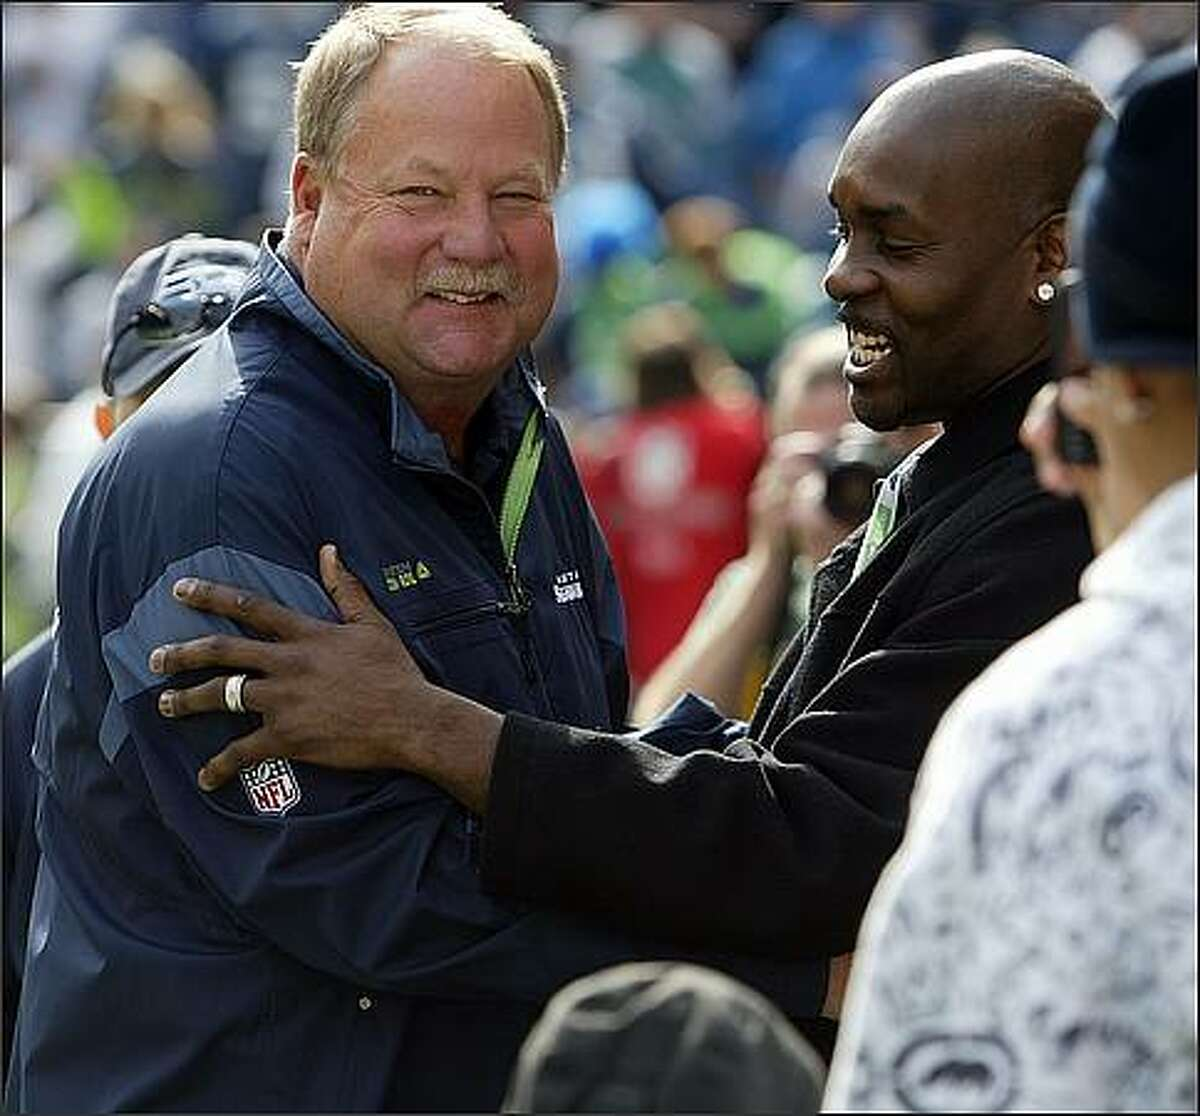 Former Seatltle Supersonics player Gary Payton (right) jokes with Seahawks headcoach Mike Holmgren during a pre-game visit at Qwest Field in Seattle.